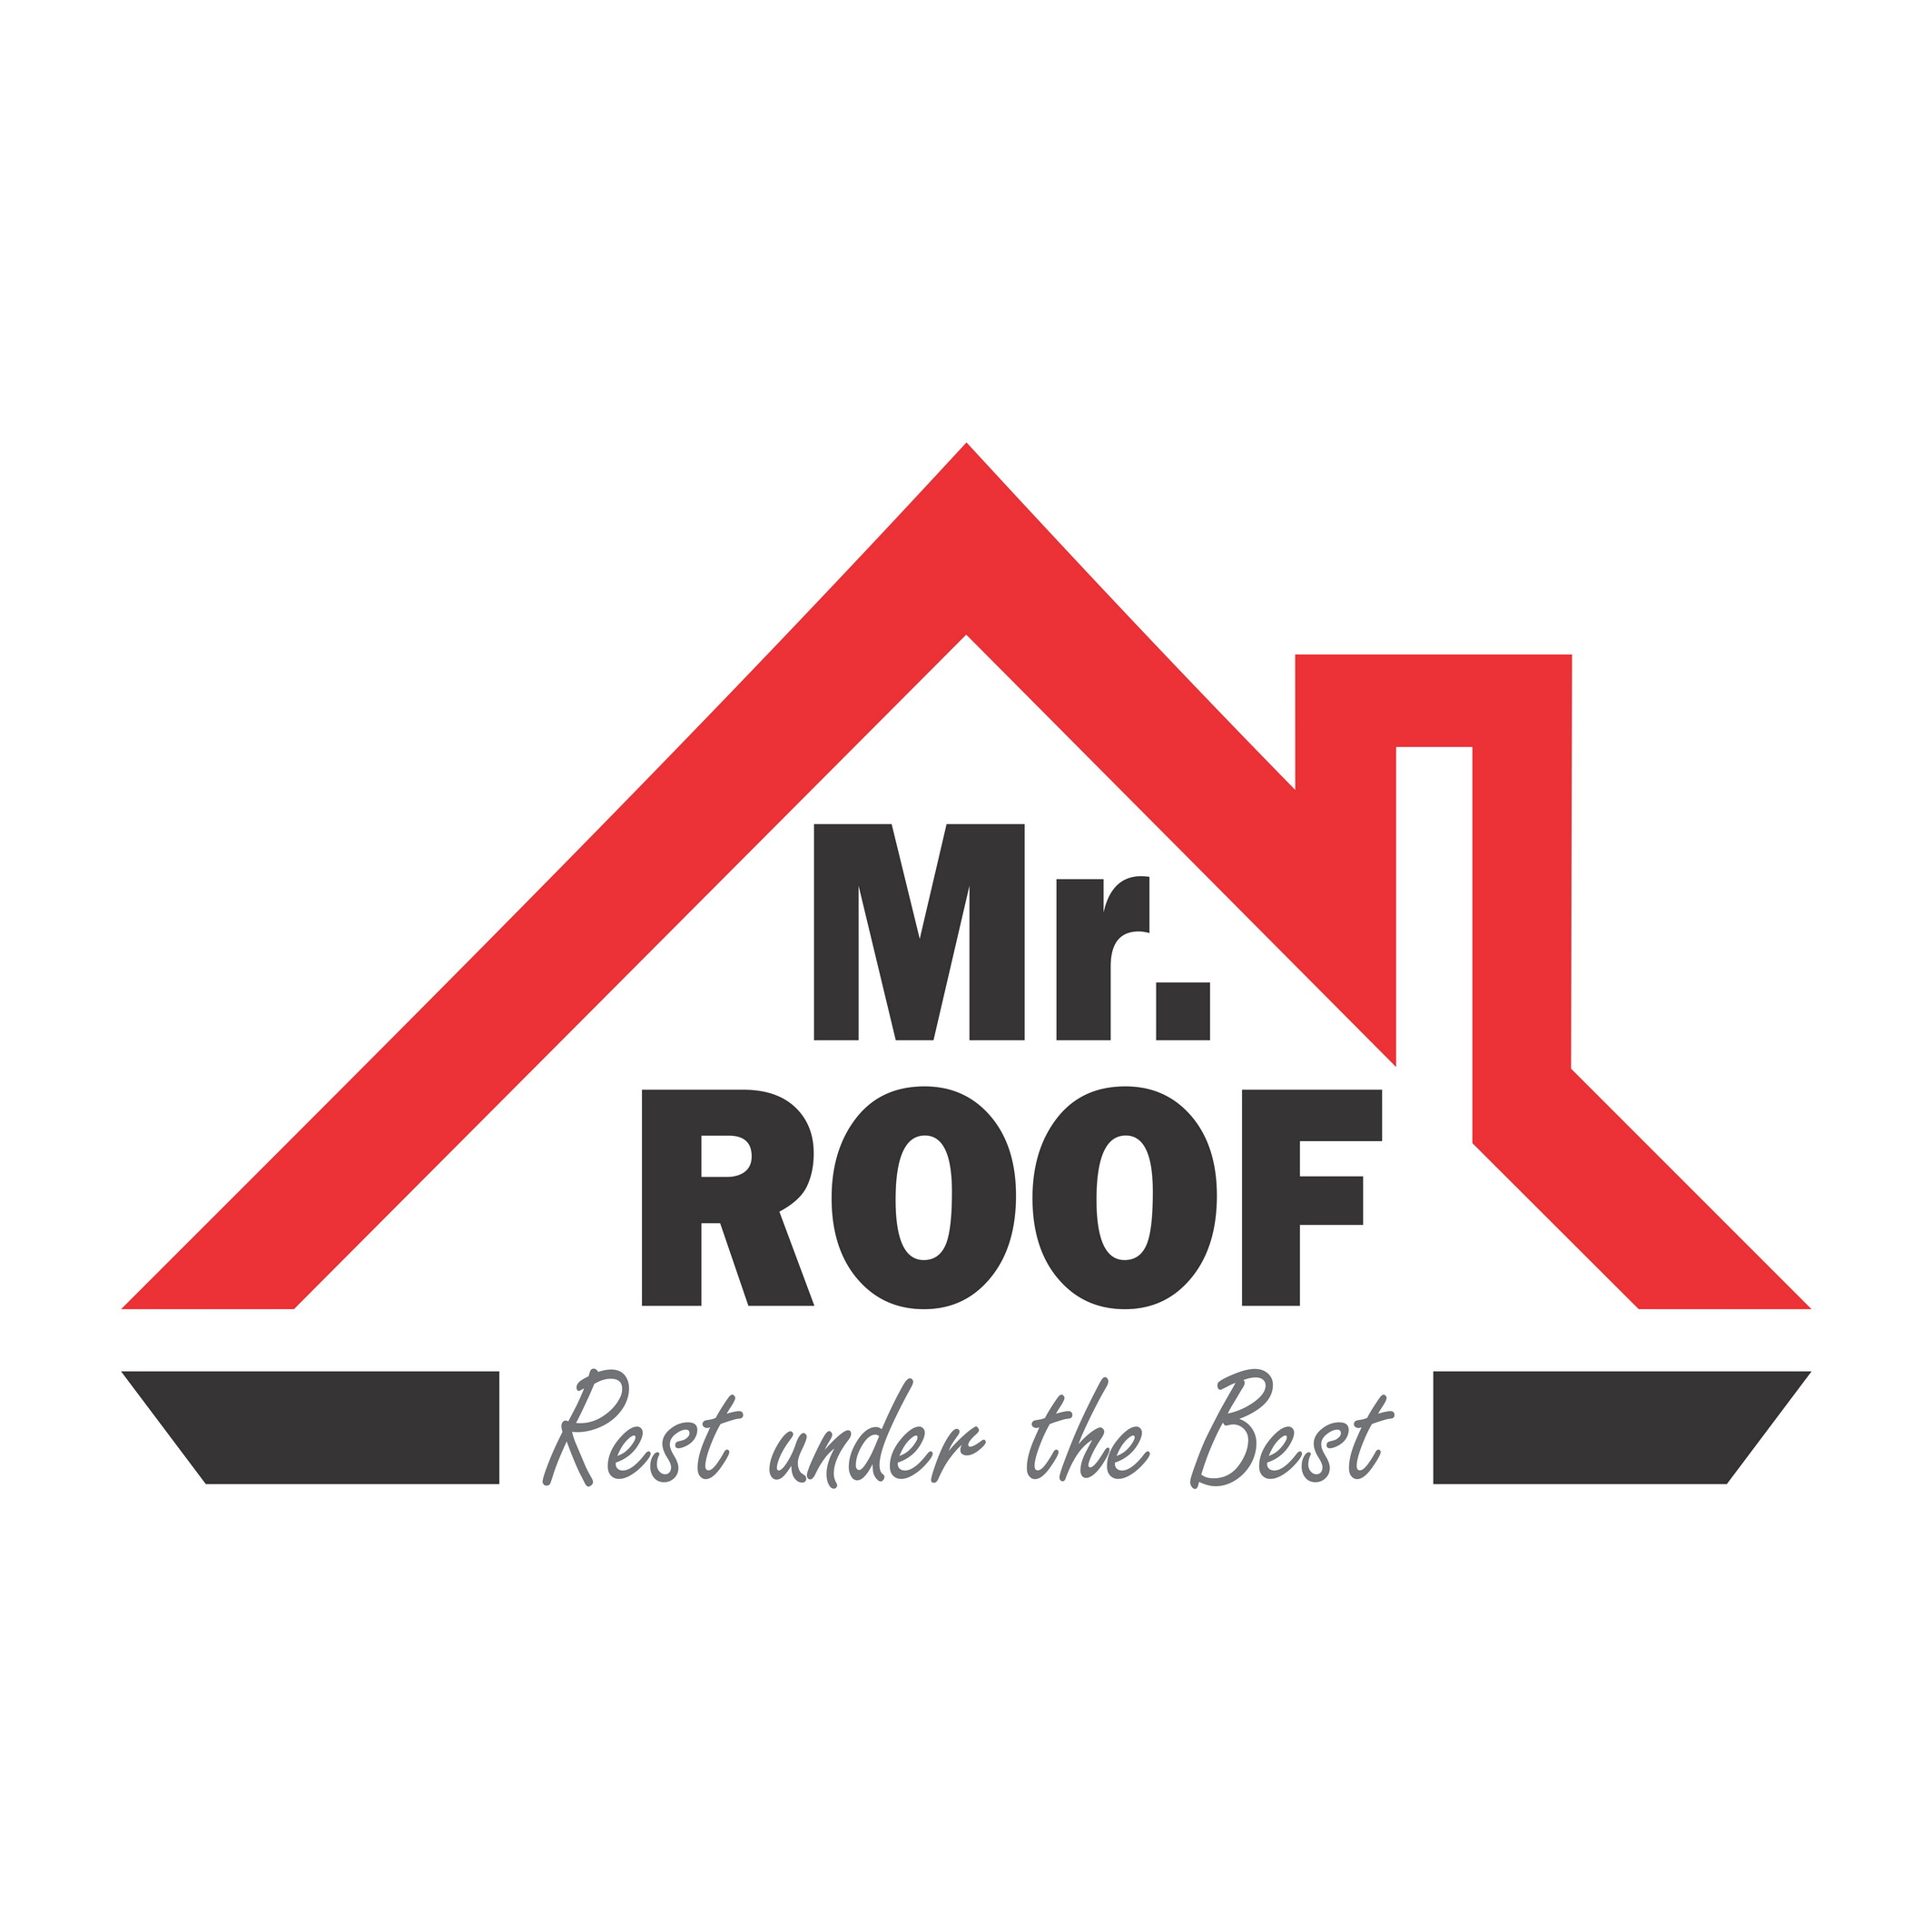 CHITTILAPPILLY TRADING CORPORATION (Mr.ROOF) In Thrissur Town, Thrissur |  CHITTILAPPILLY TRADING CORPORATION (Mr.ROOF), Thrissur Town Phone Numbers  ...